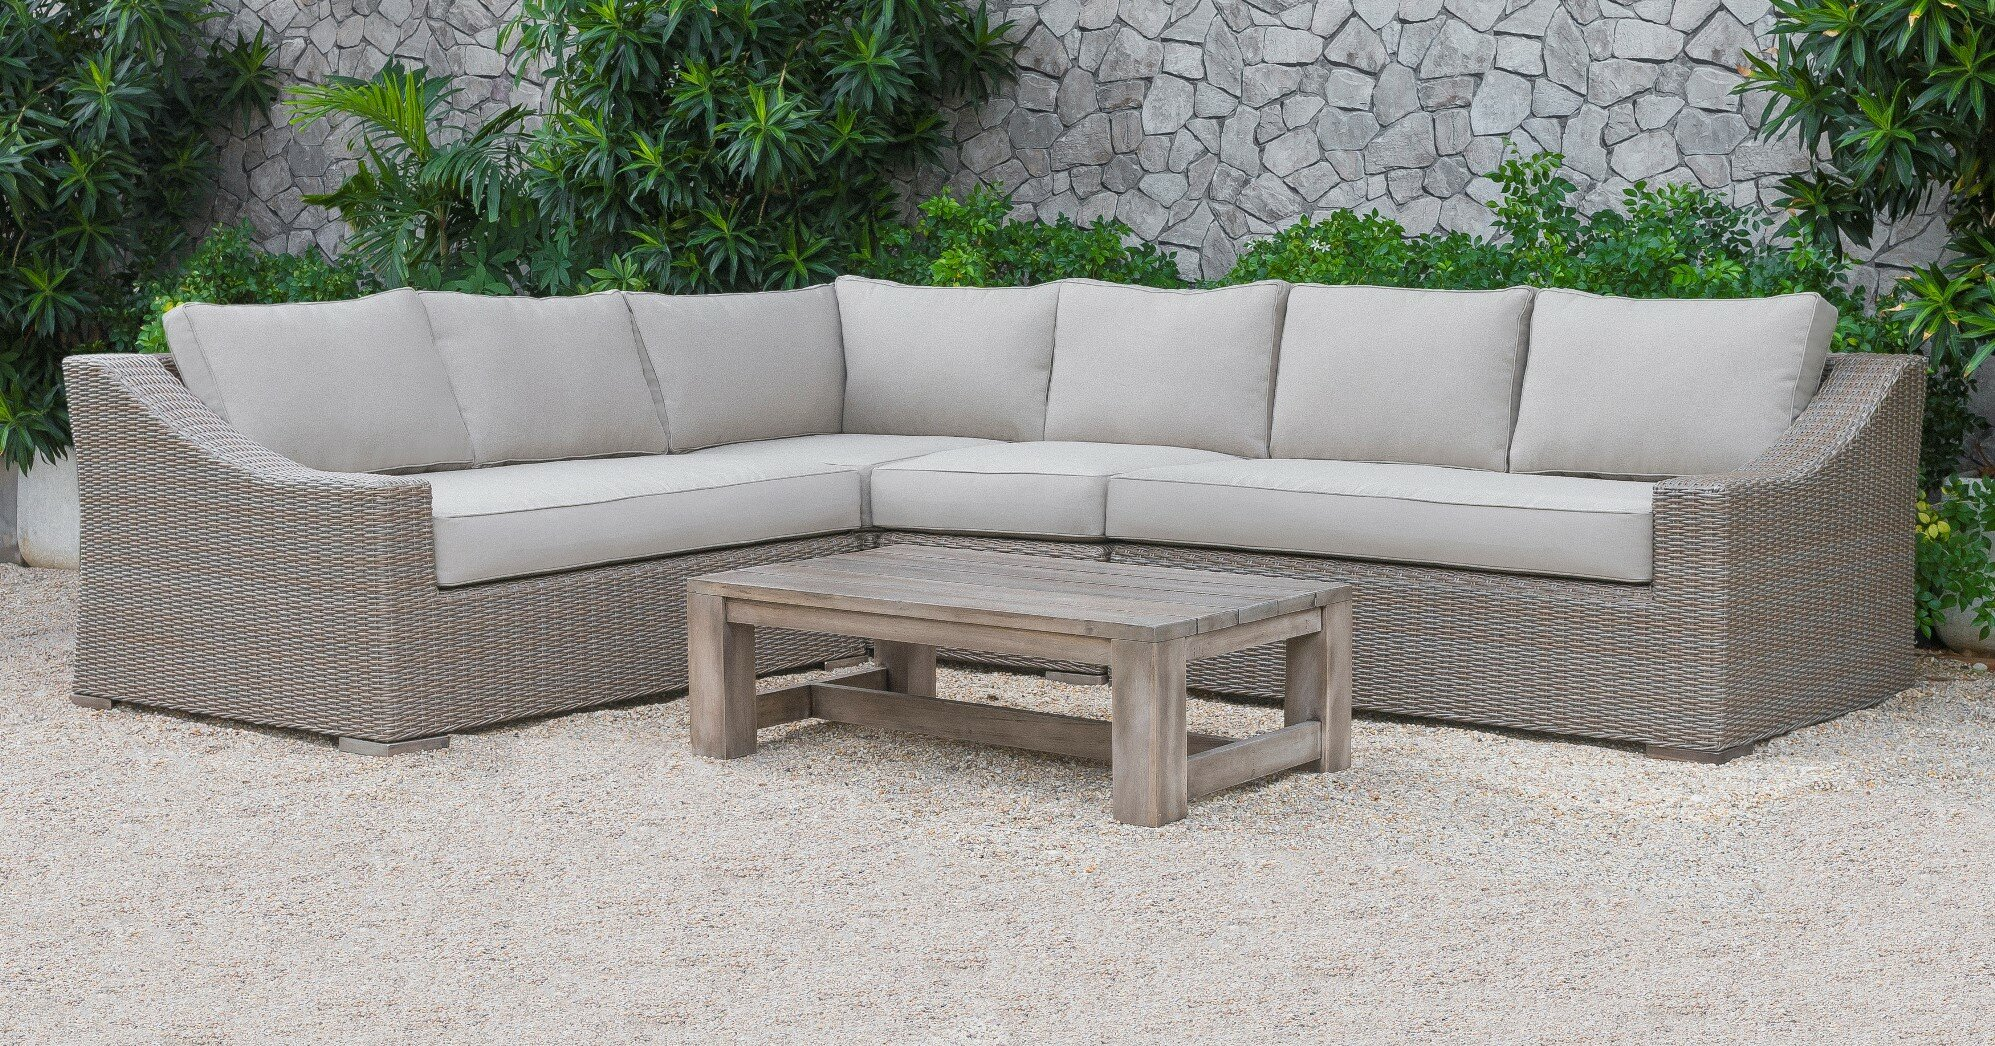 Gracie Oaks Abbot 5 Piece Sectional Set with Cushions & Reviews ...